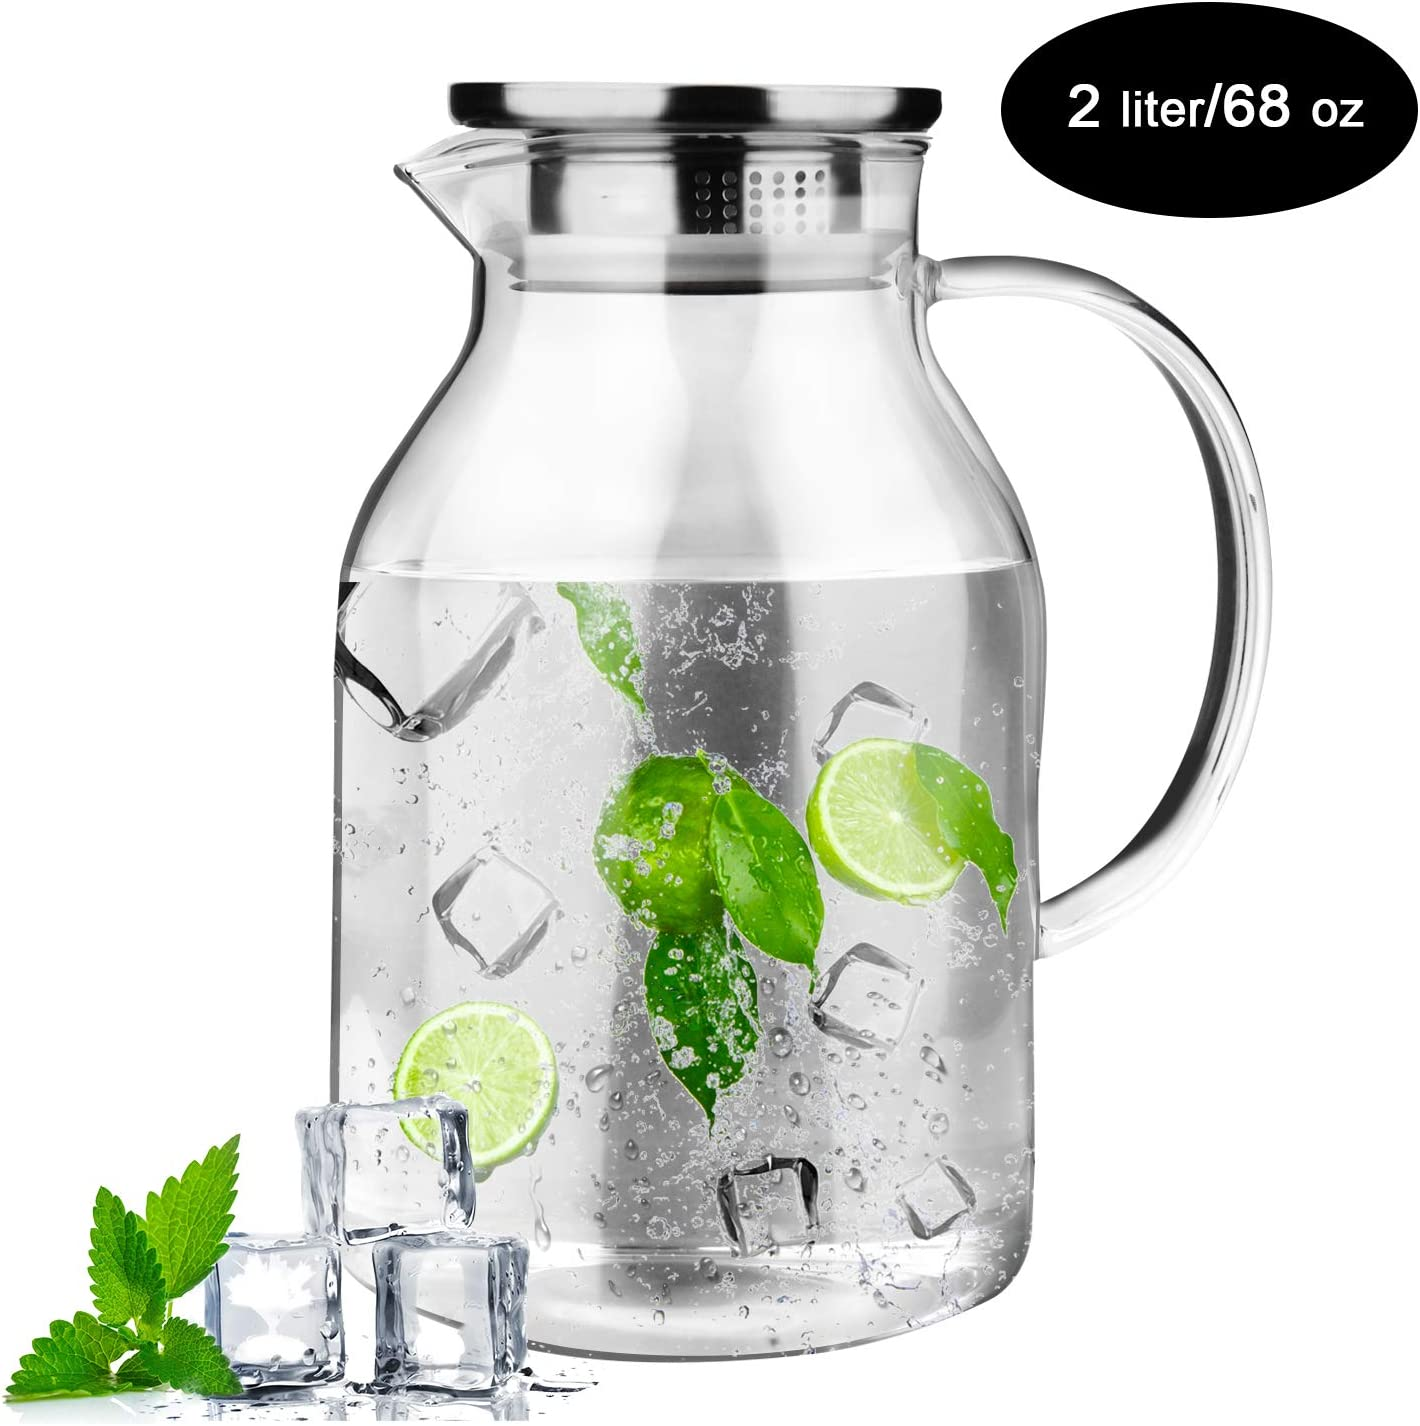 68 oz Glass Pitcher, OAMCEG Glass Water Jug/Carafe with Drip-Free Stainless Steel Lid for Hot/Cold Water, Iced Tea and Juice Beverage